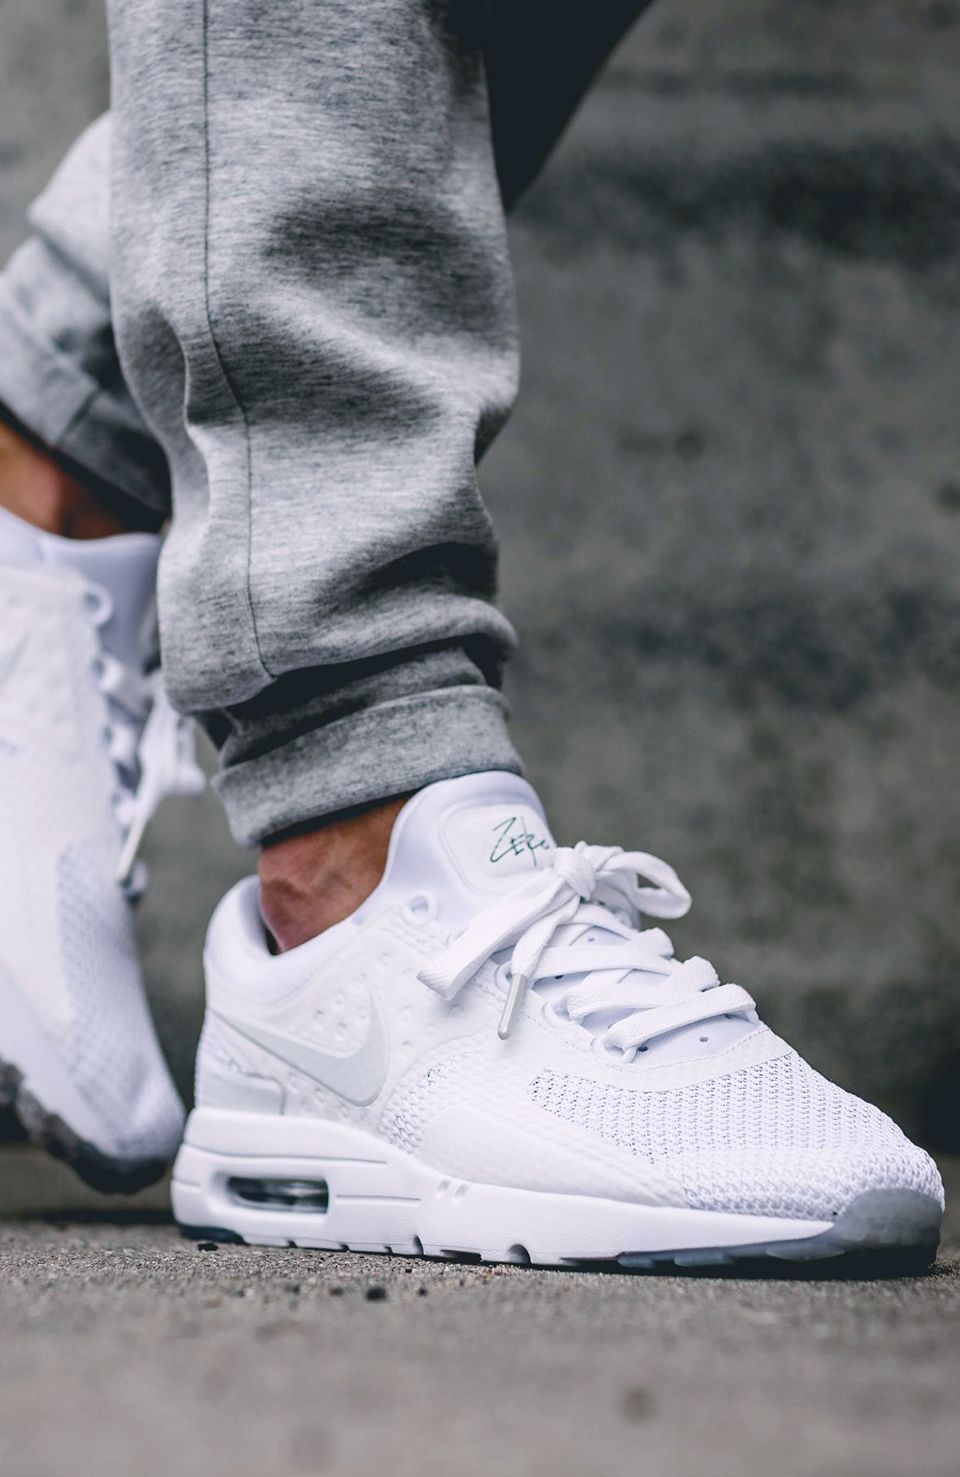 ecef19b9c8 NIKE AIR MAX ZERO Triple White #sneakernews #Sneakers #StreetStyle #Kicks